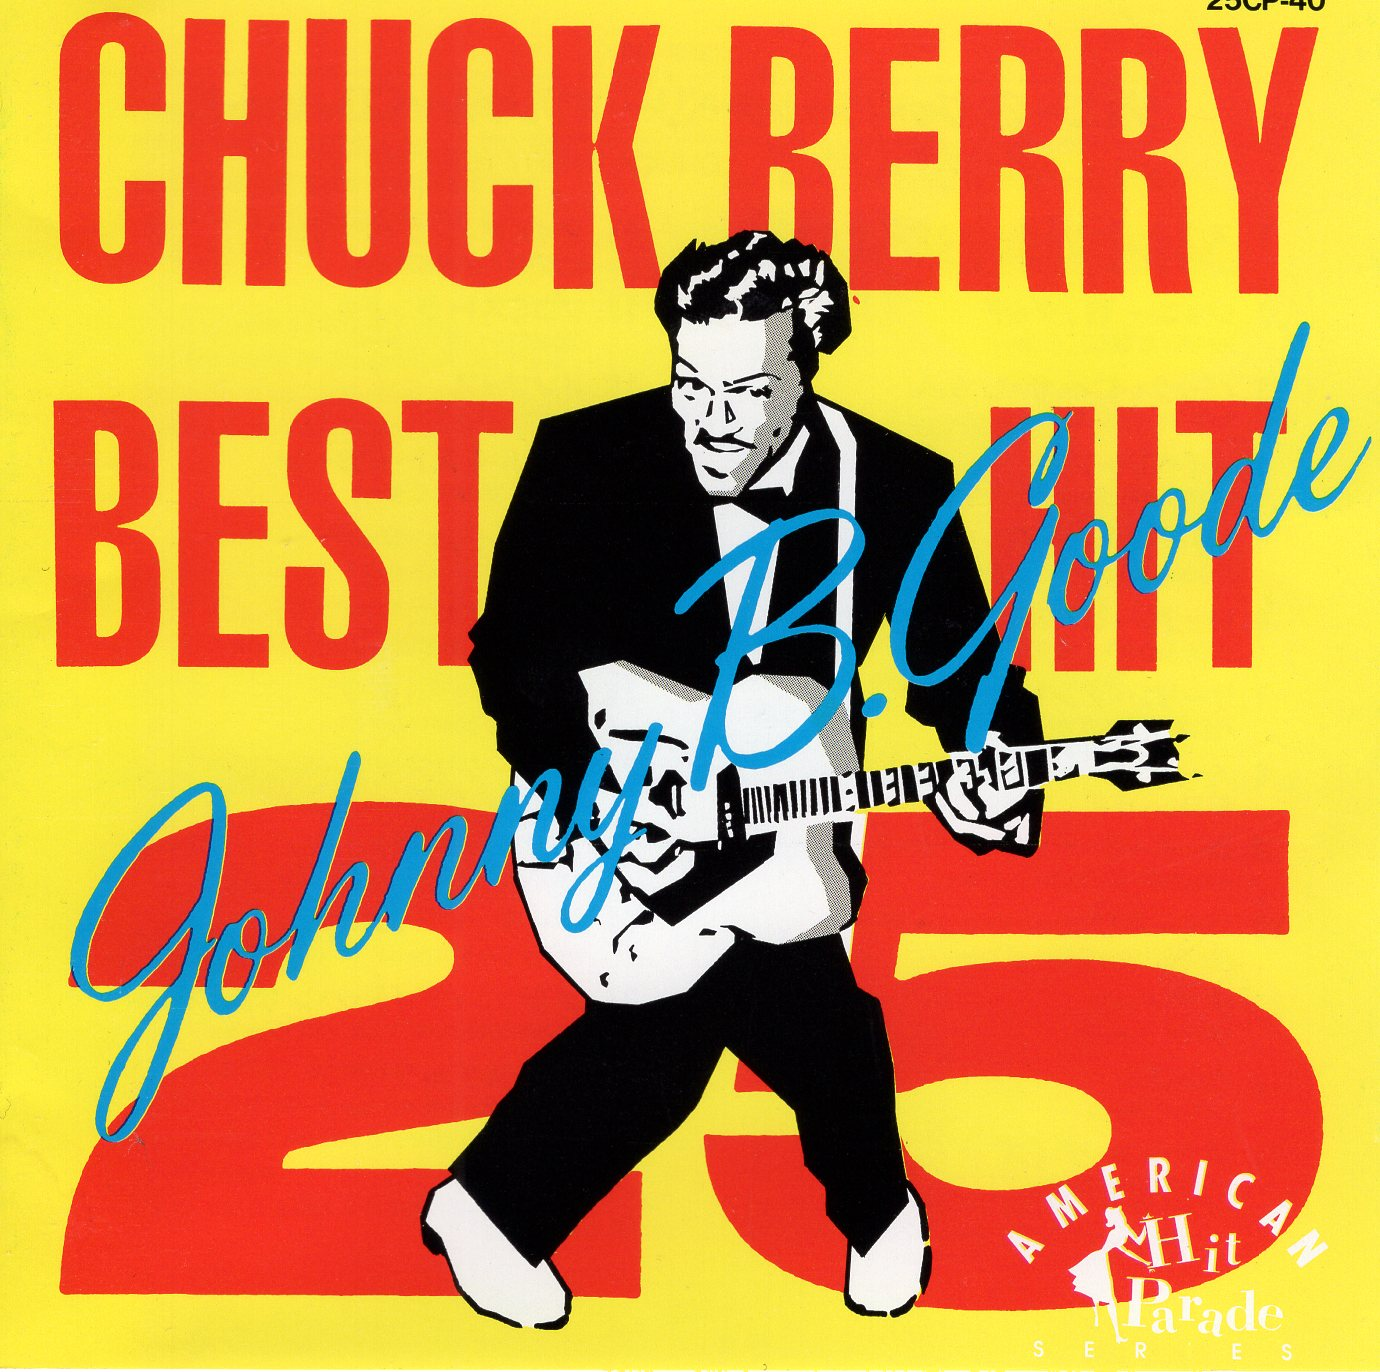 """Johnny B. Goode: Chuck Berry Best Hits 25 Johnny B. Goode"" Chuck Berry"